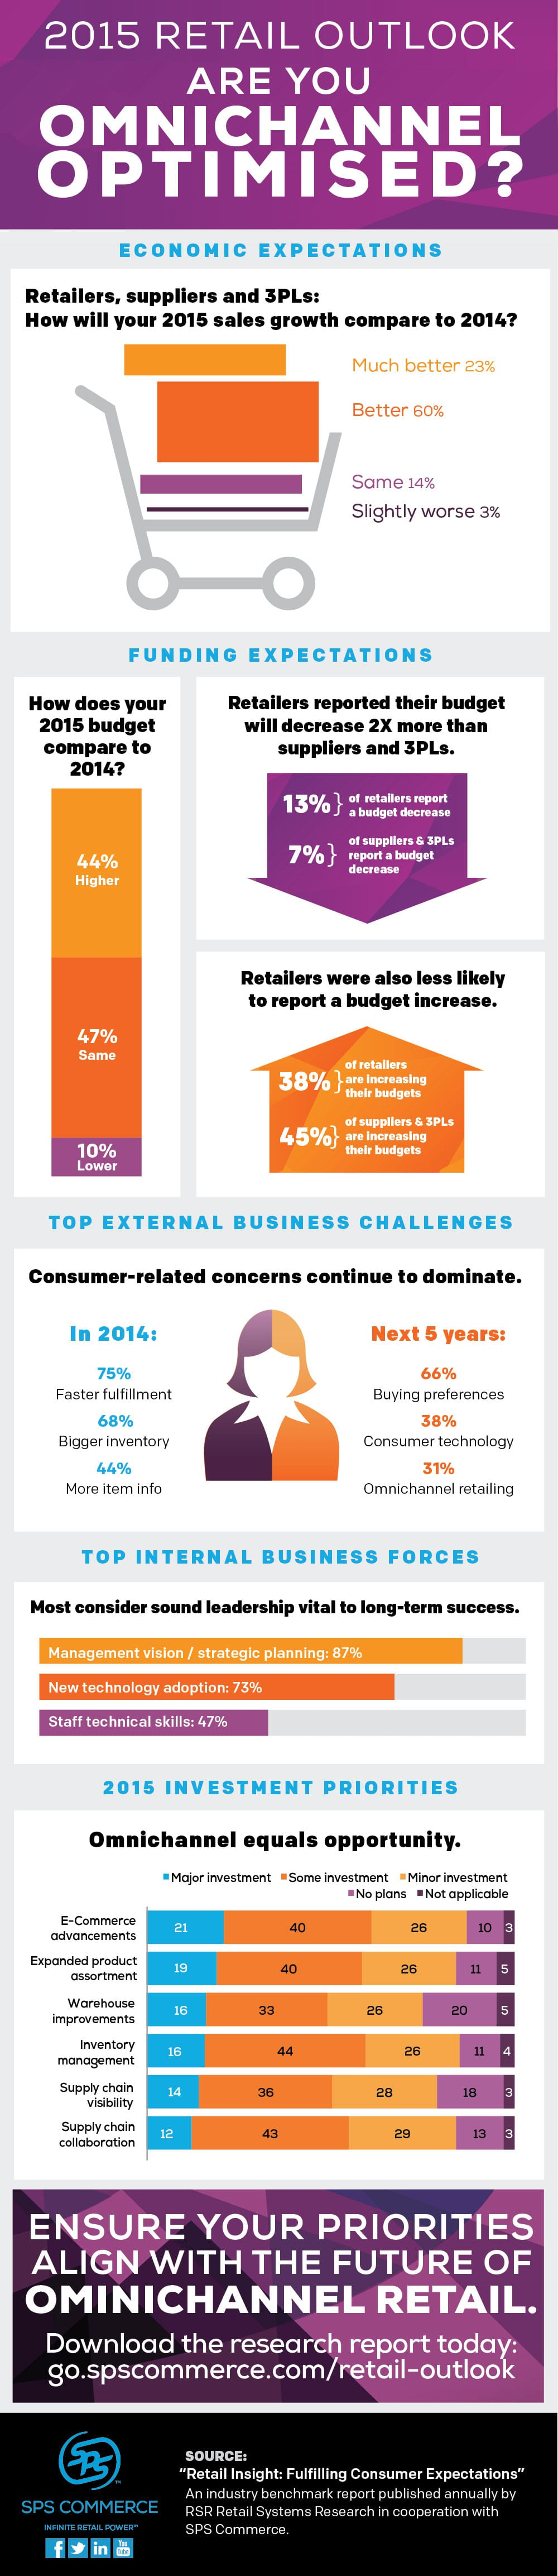 Retail_Outlook_2015_infographic_1000px